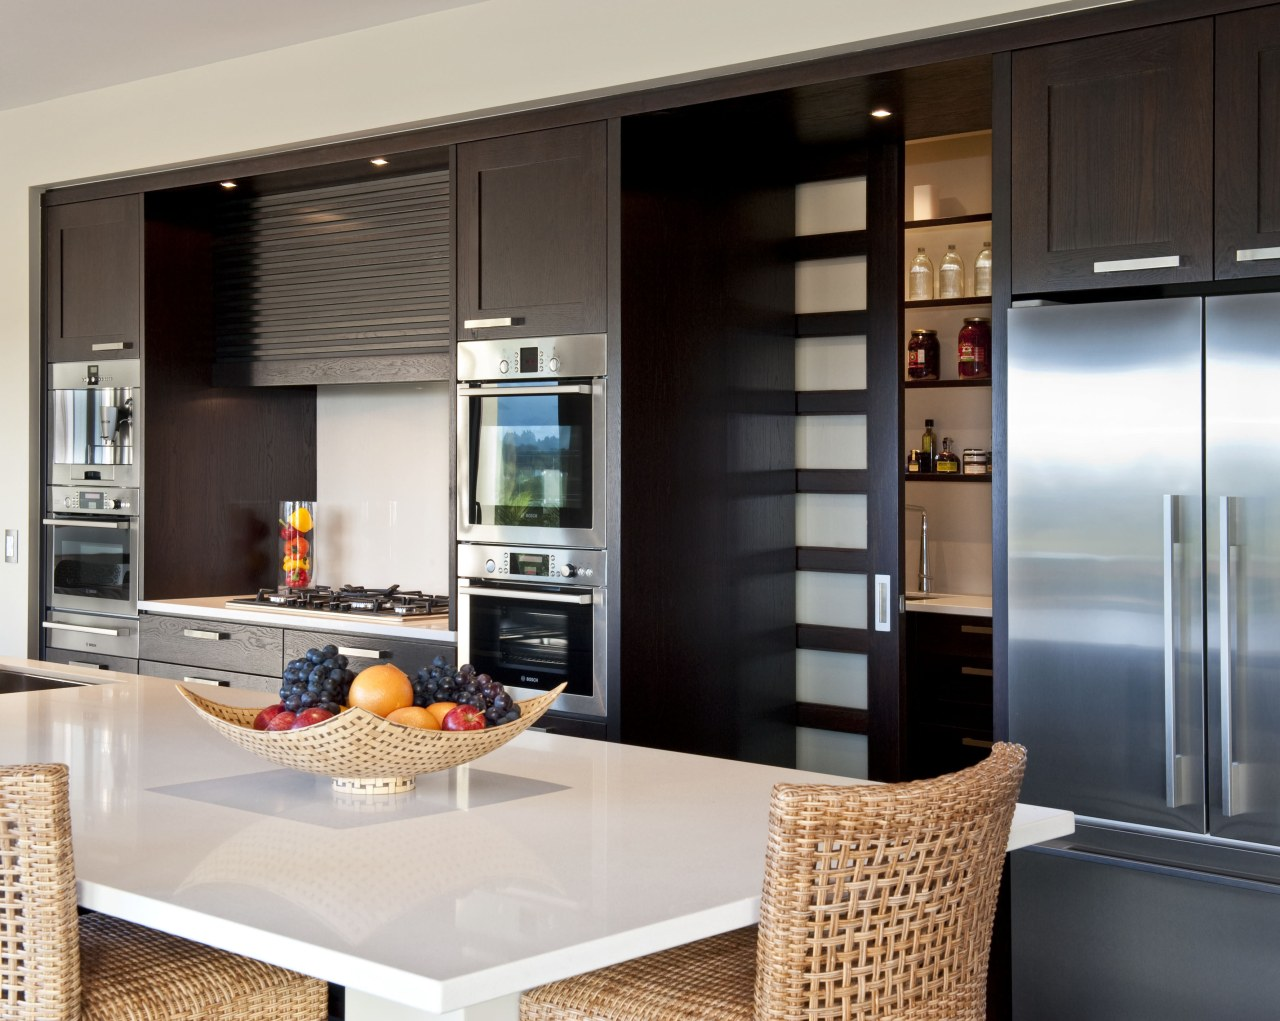 Interior view of this modern home cabinetry, countertop, cuisine classique, home appliance, interior design, kitchen, black, white